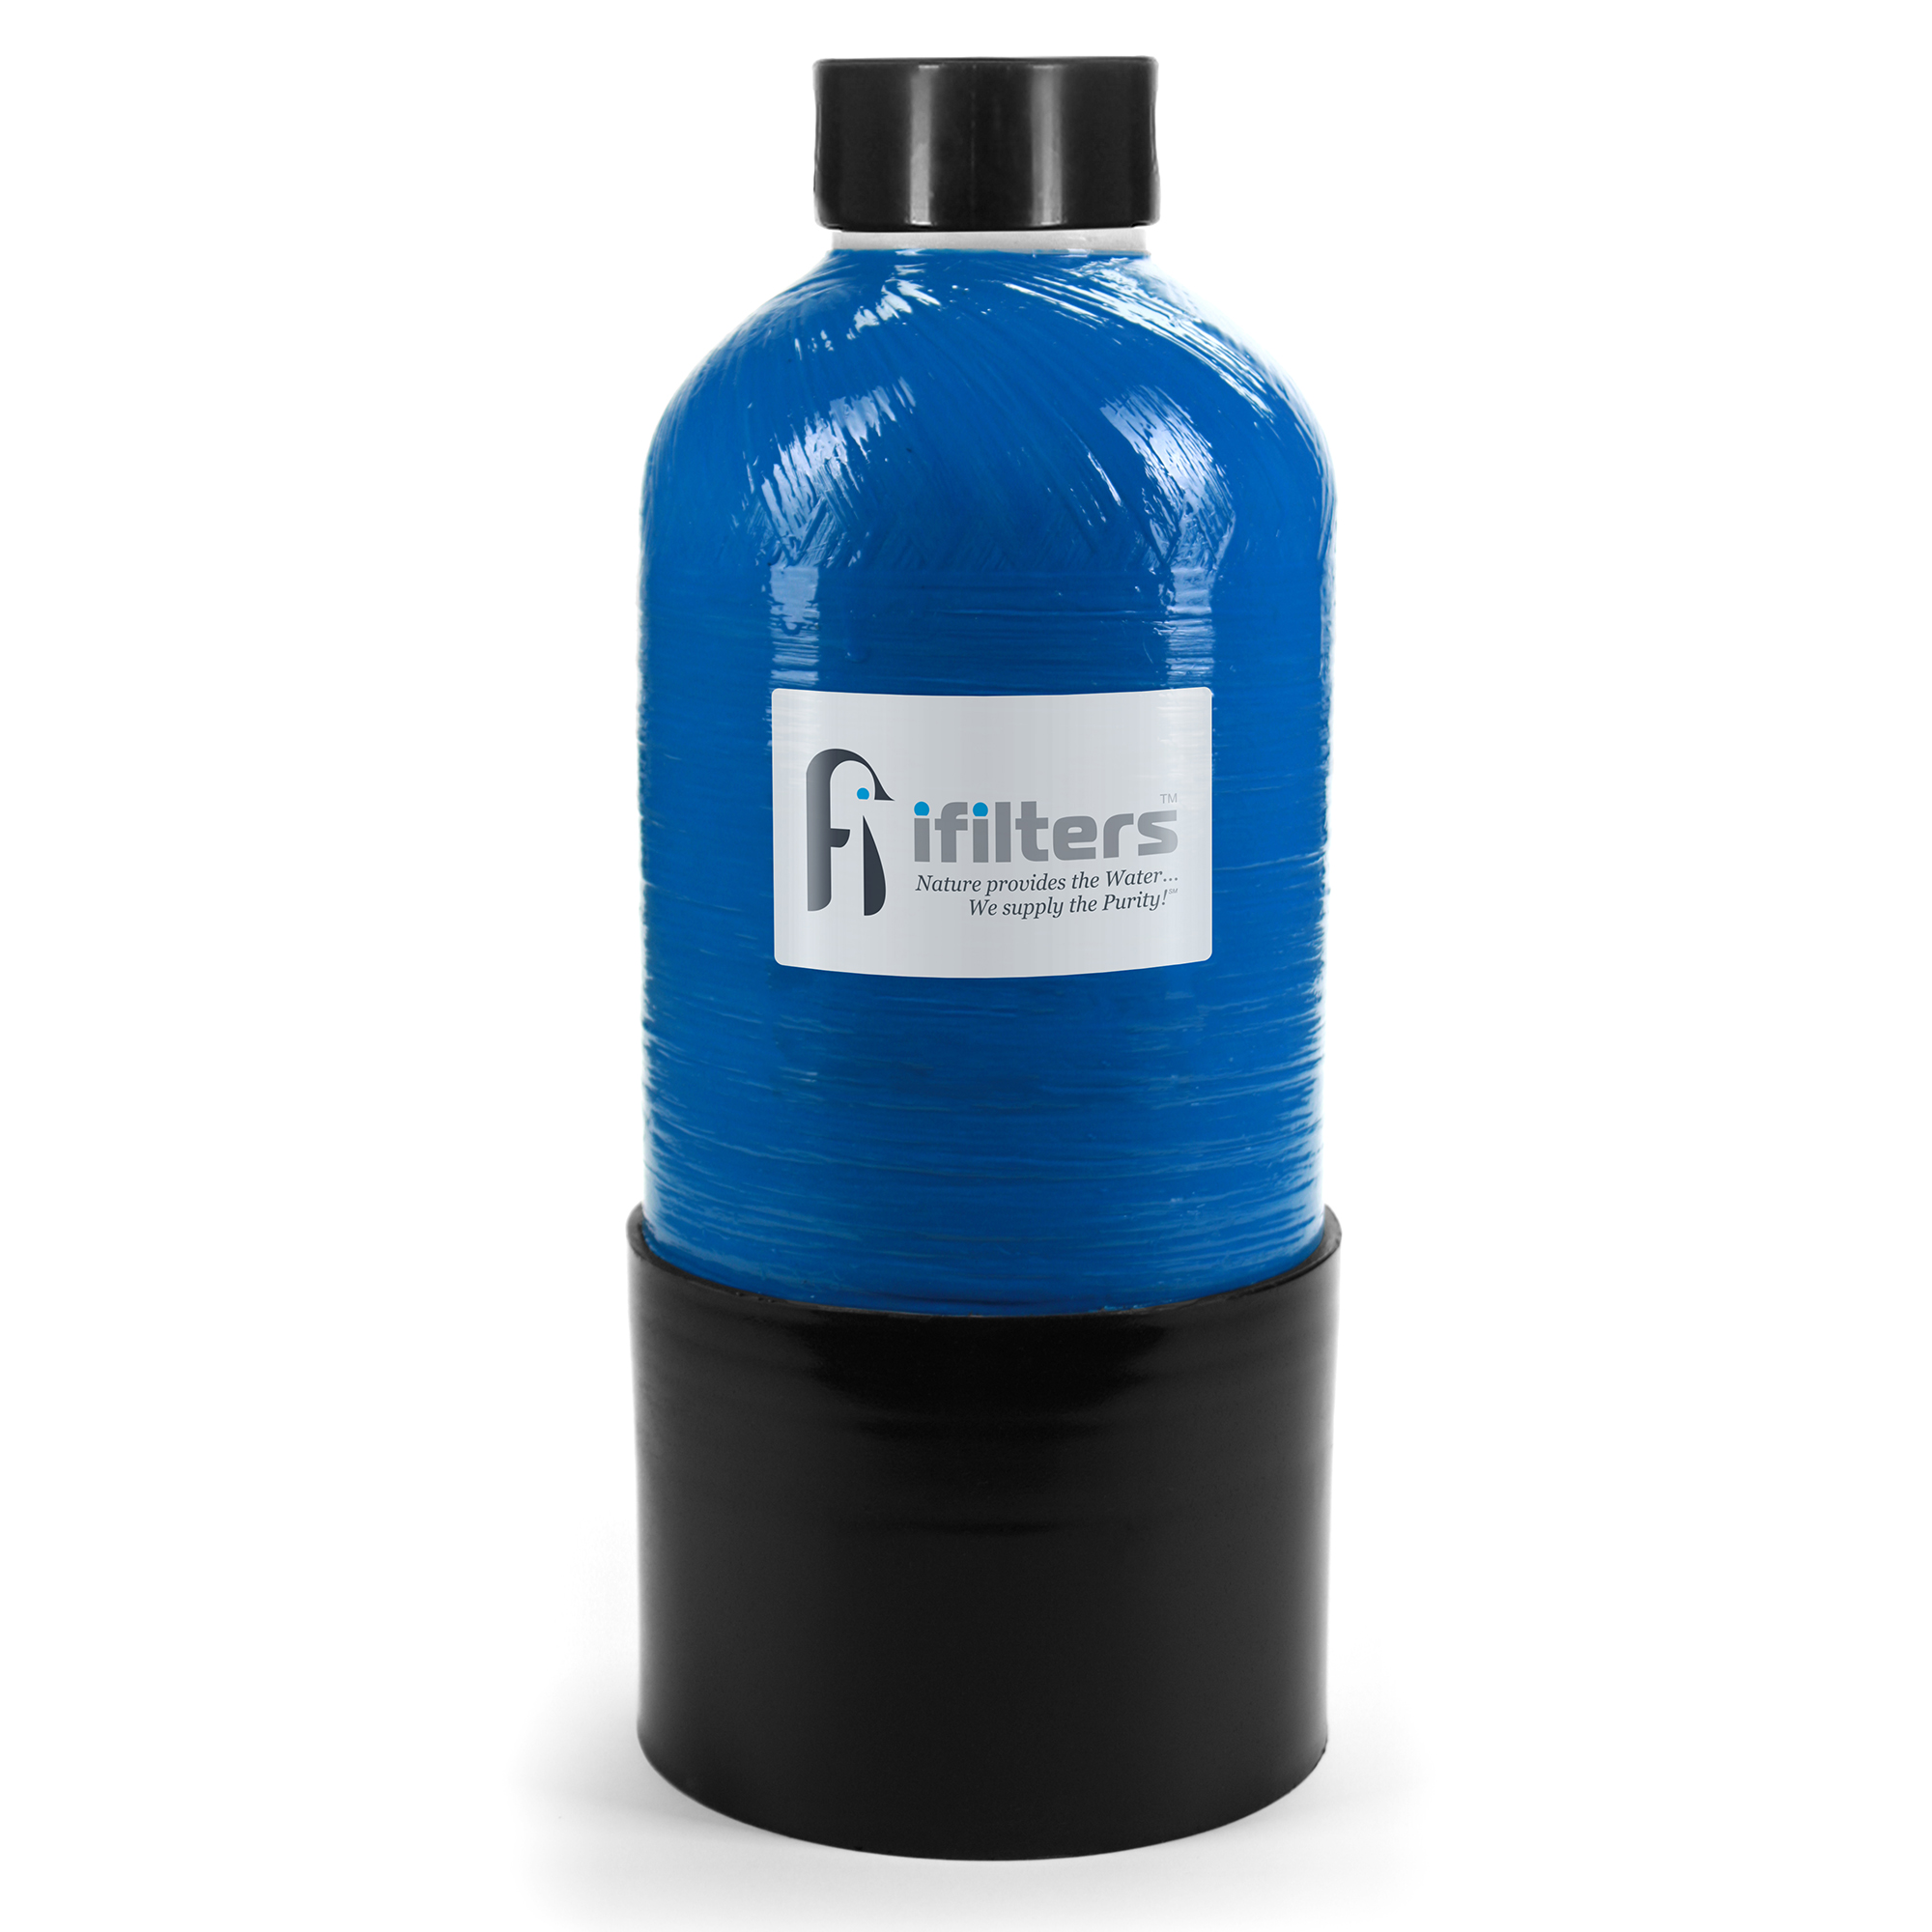 Water Softener Price Ifilters Portable Water Softener 16 000 Grain Capacity Used In